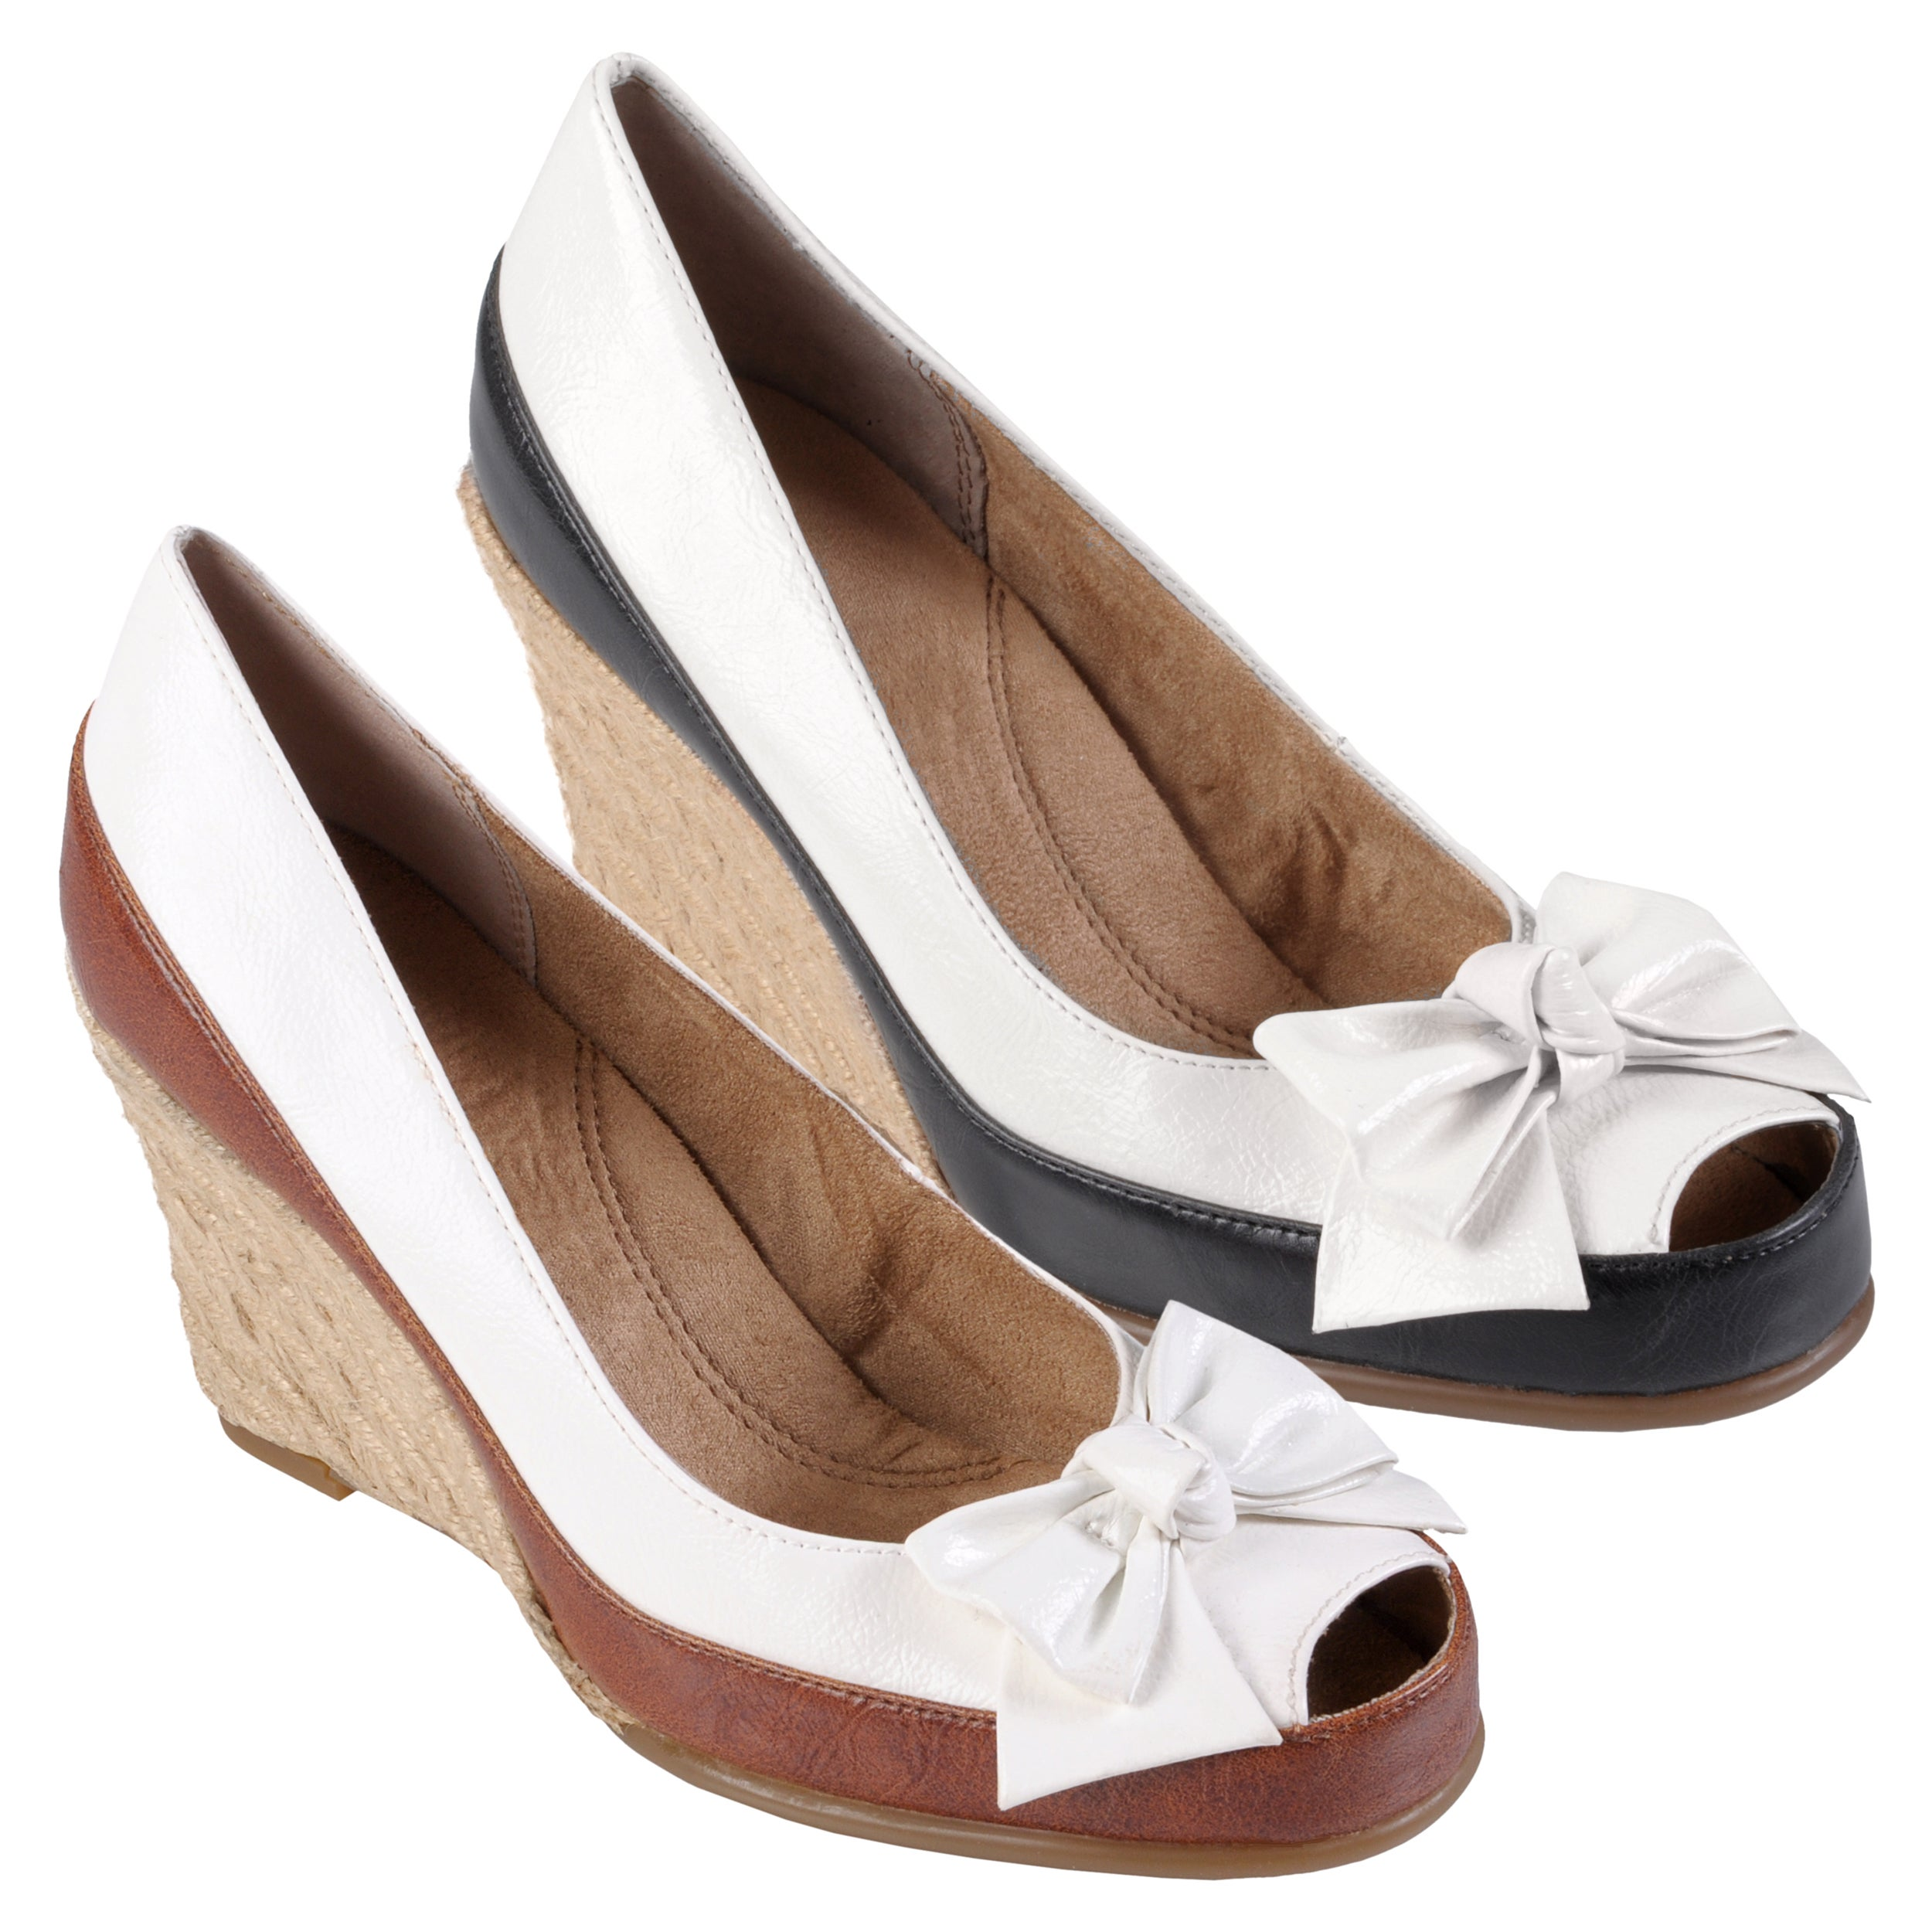 38dcc26a9c Shop Aerosoles Women's 'Wellwisher' Bow Accent Peep Toe Wedges - Free  Shipping Today - Overstock - 6622616